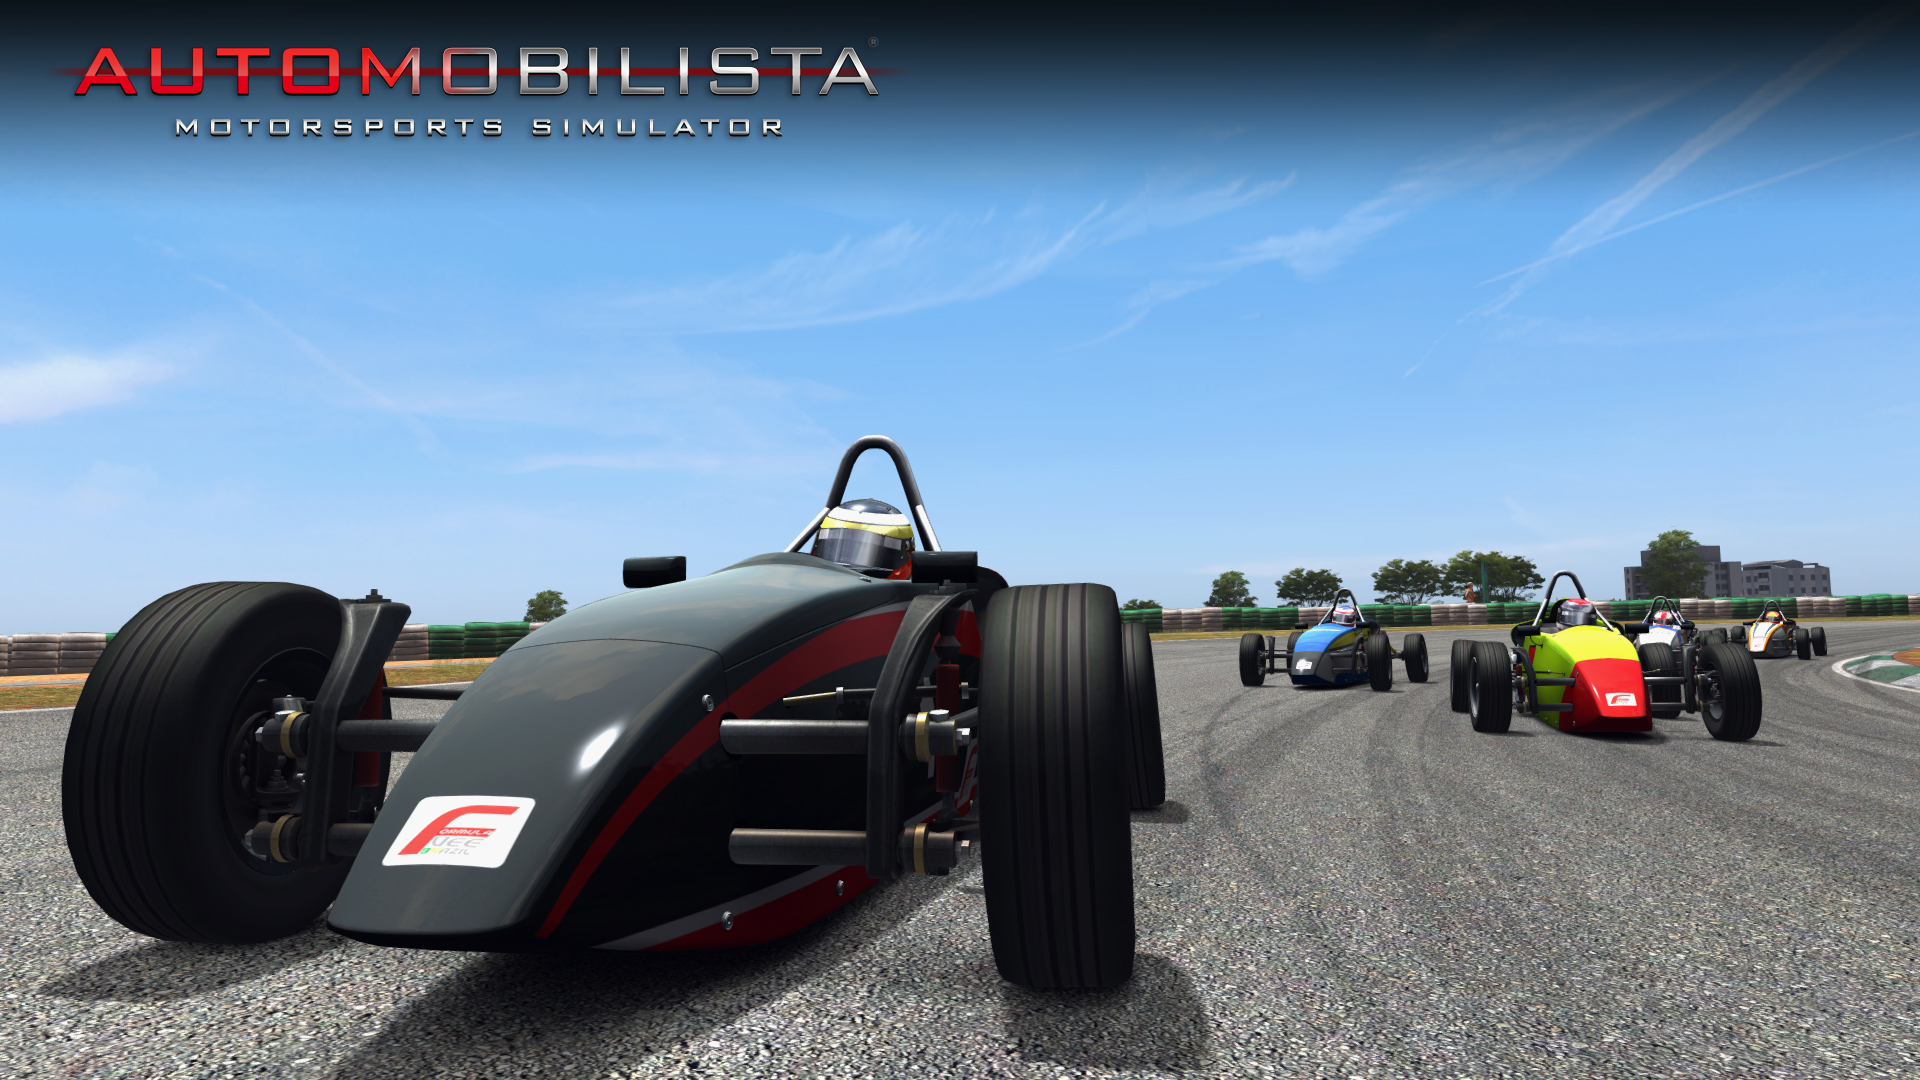 Automobilista screenshot